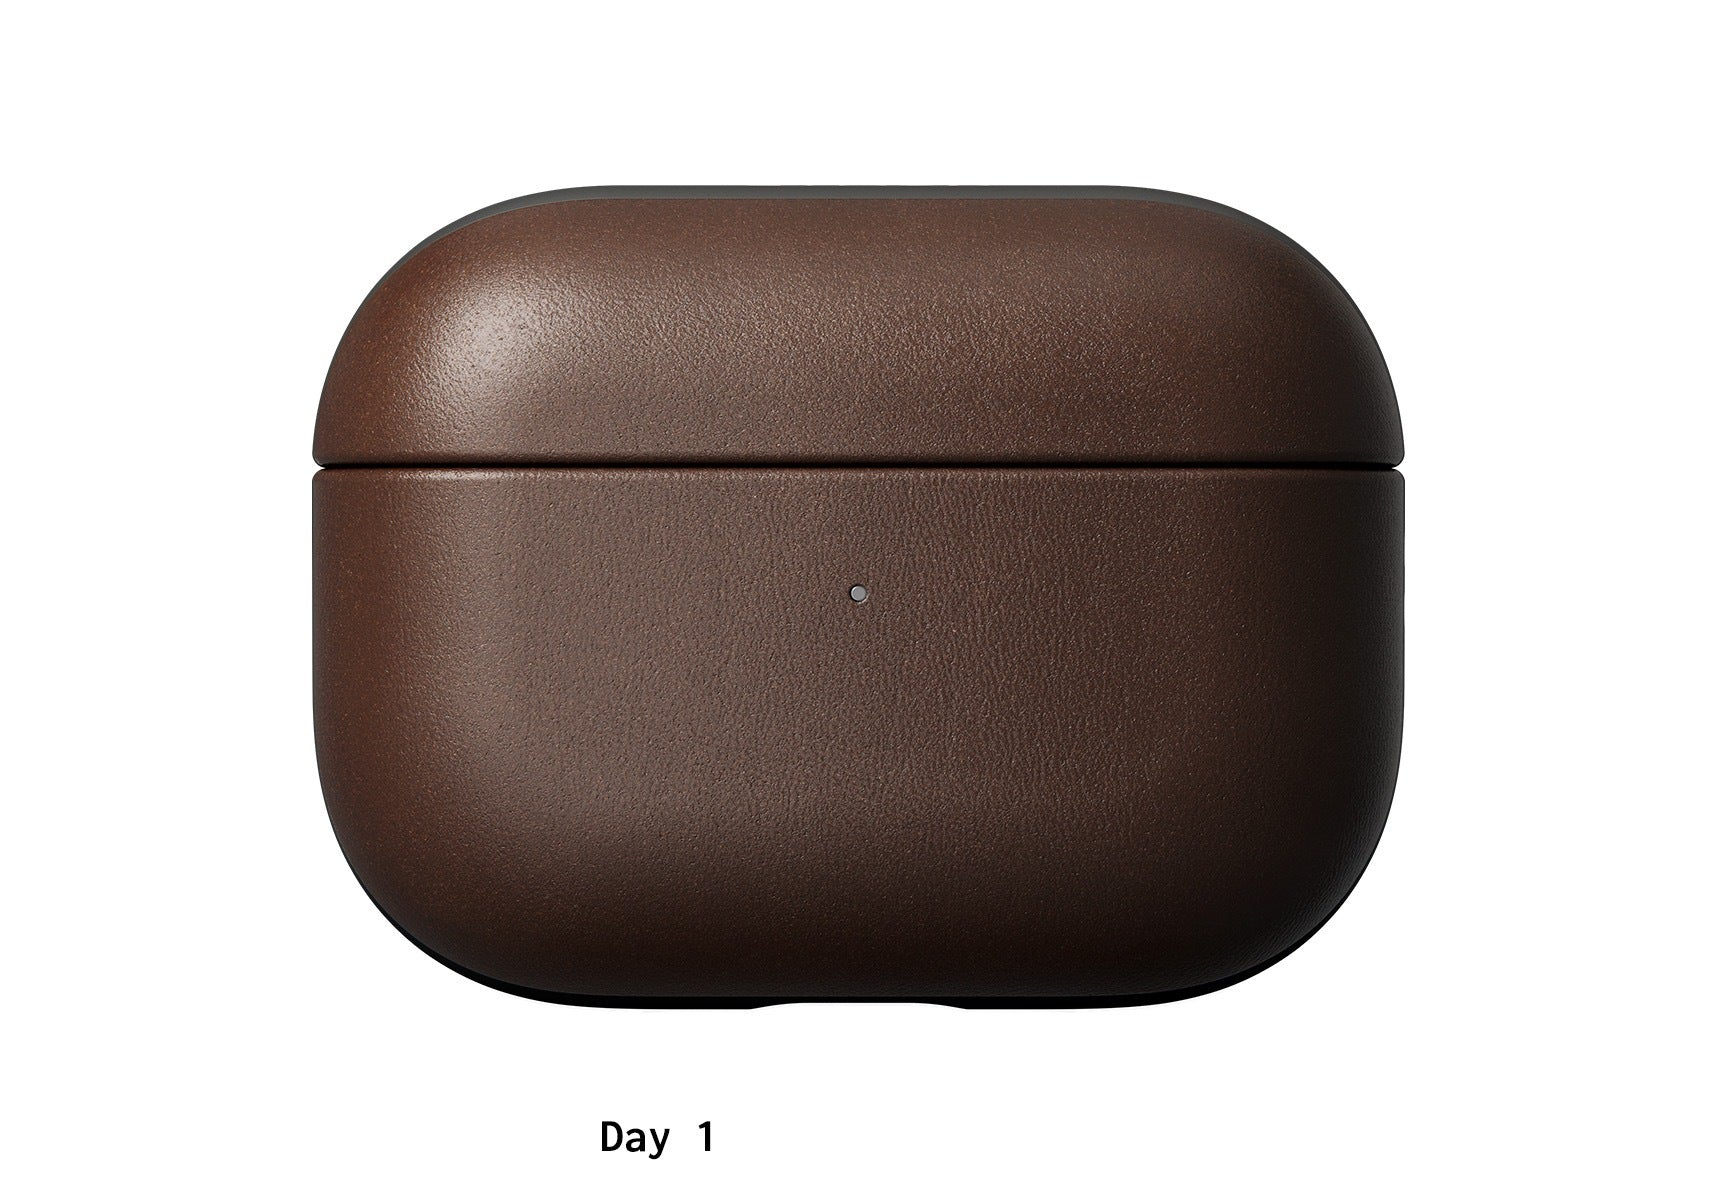 AirPod Rugged Case Horween leather on day one.